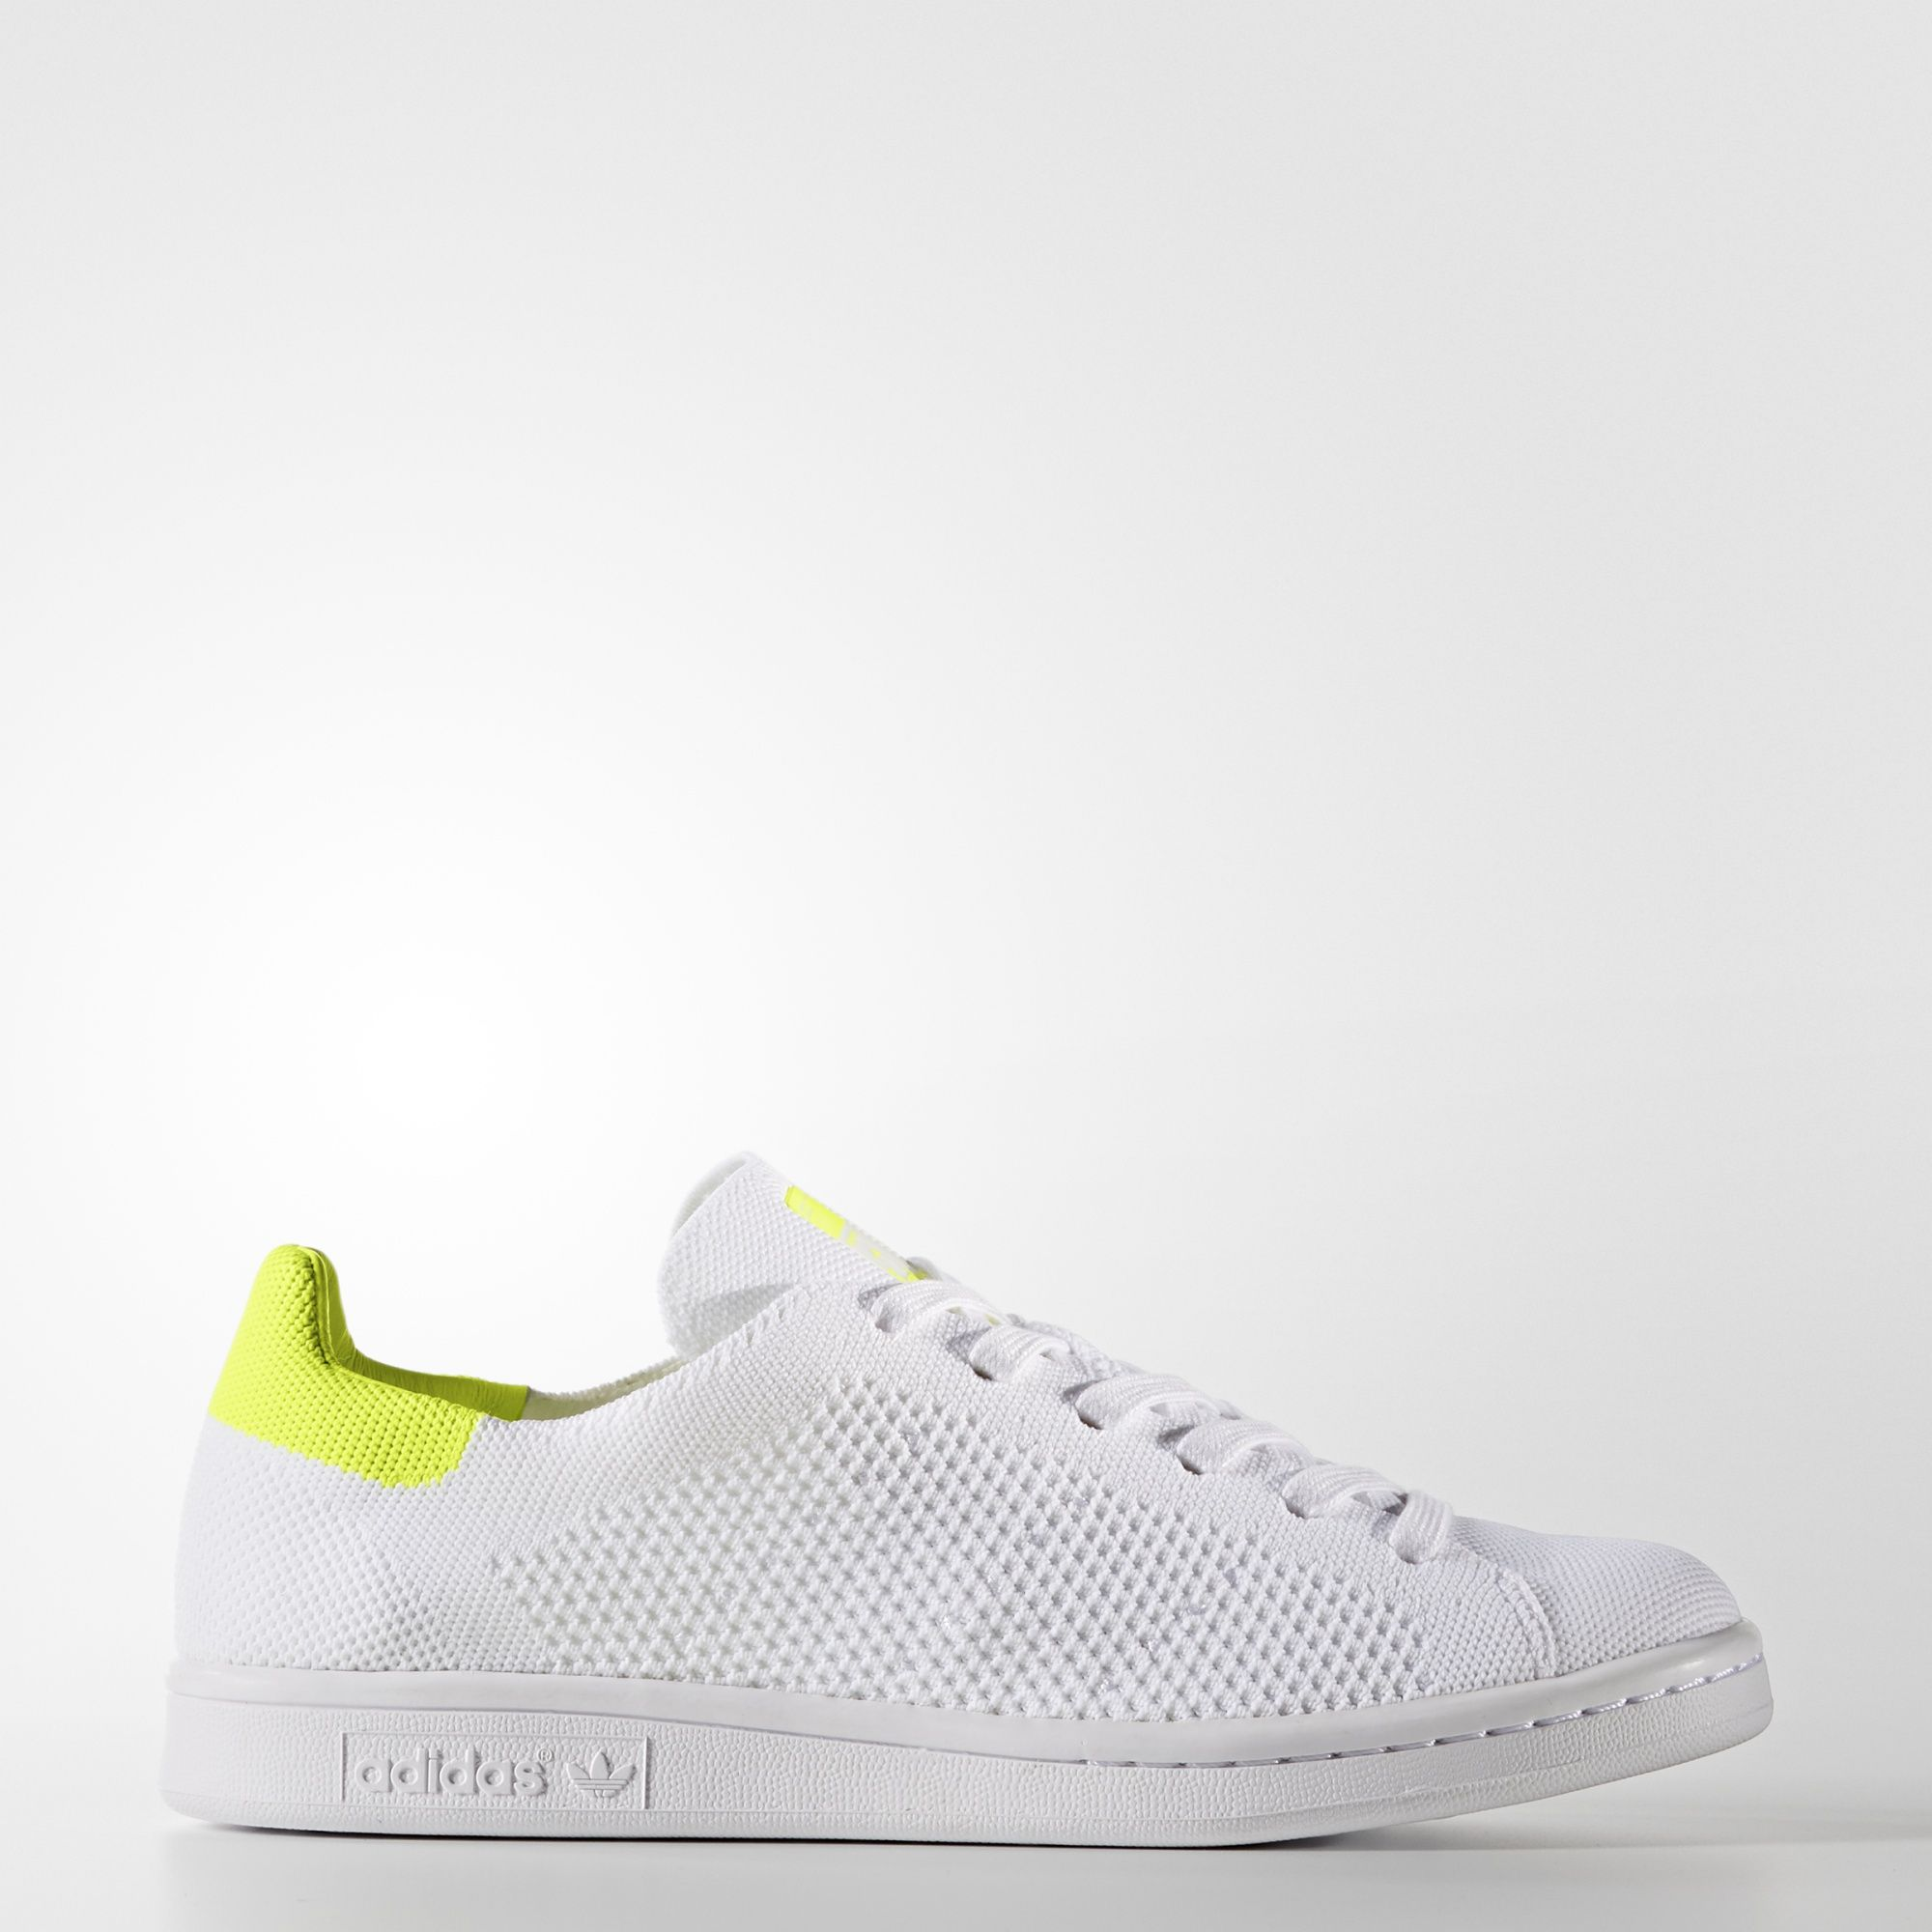 reputable site d6a06 4df4f adidas Stan Smith Primeknit Shoes - White   adidas Belgium